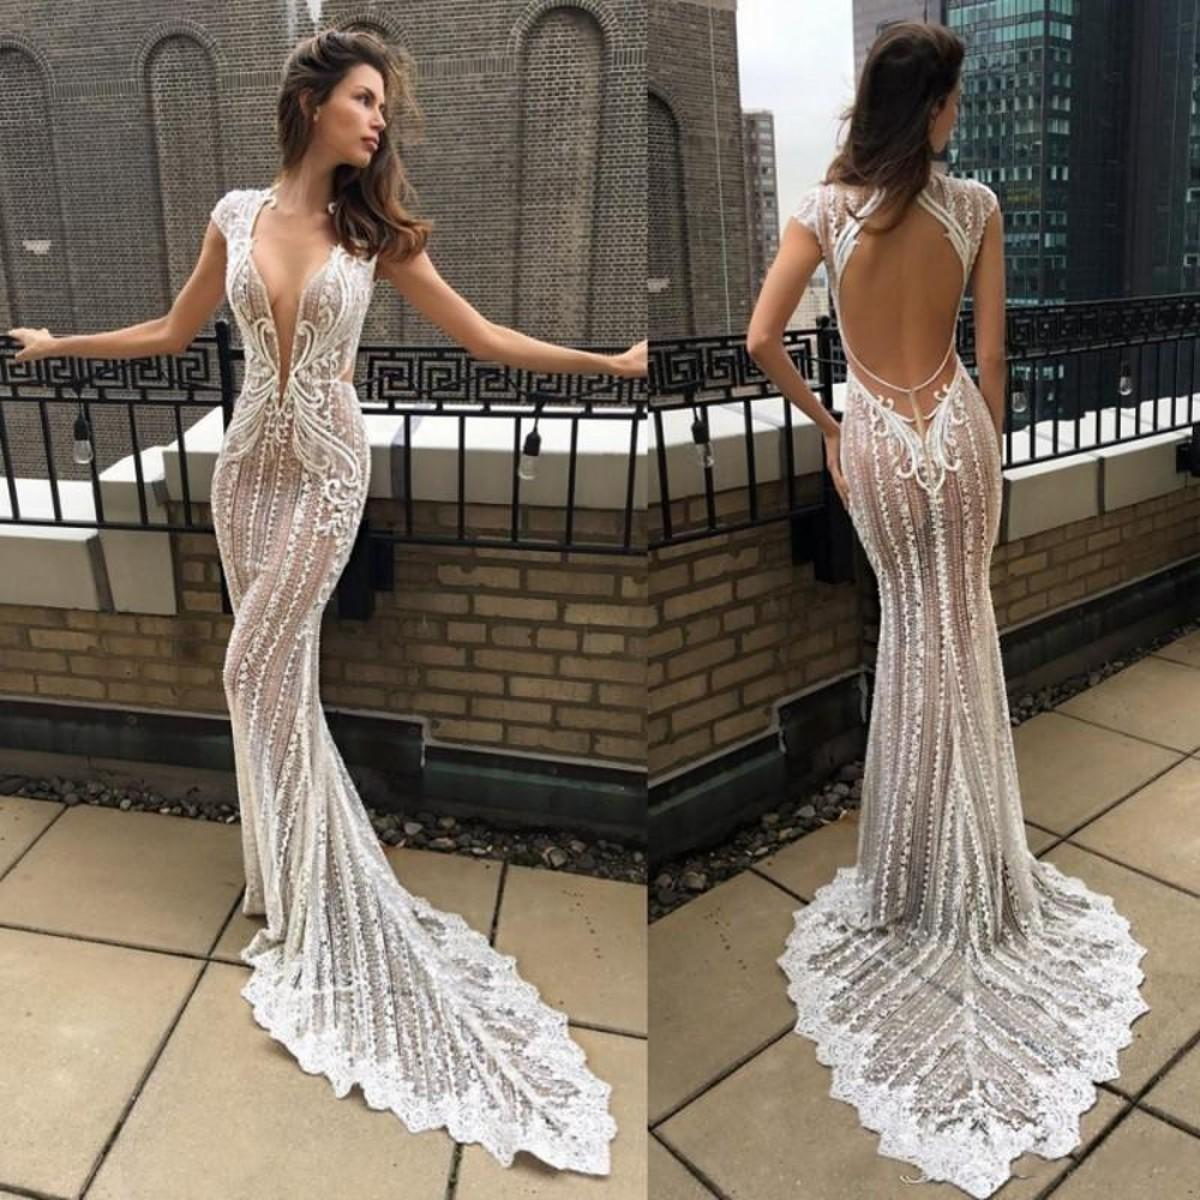 2020 Sexy Deep V-neck Illusion Mermaid Wedding Dresses 2020 Lace Appliqued Backless Bridal Gowns Vestido De Novia Cap Sleeve Wedding Gowns